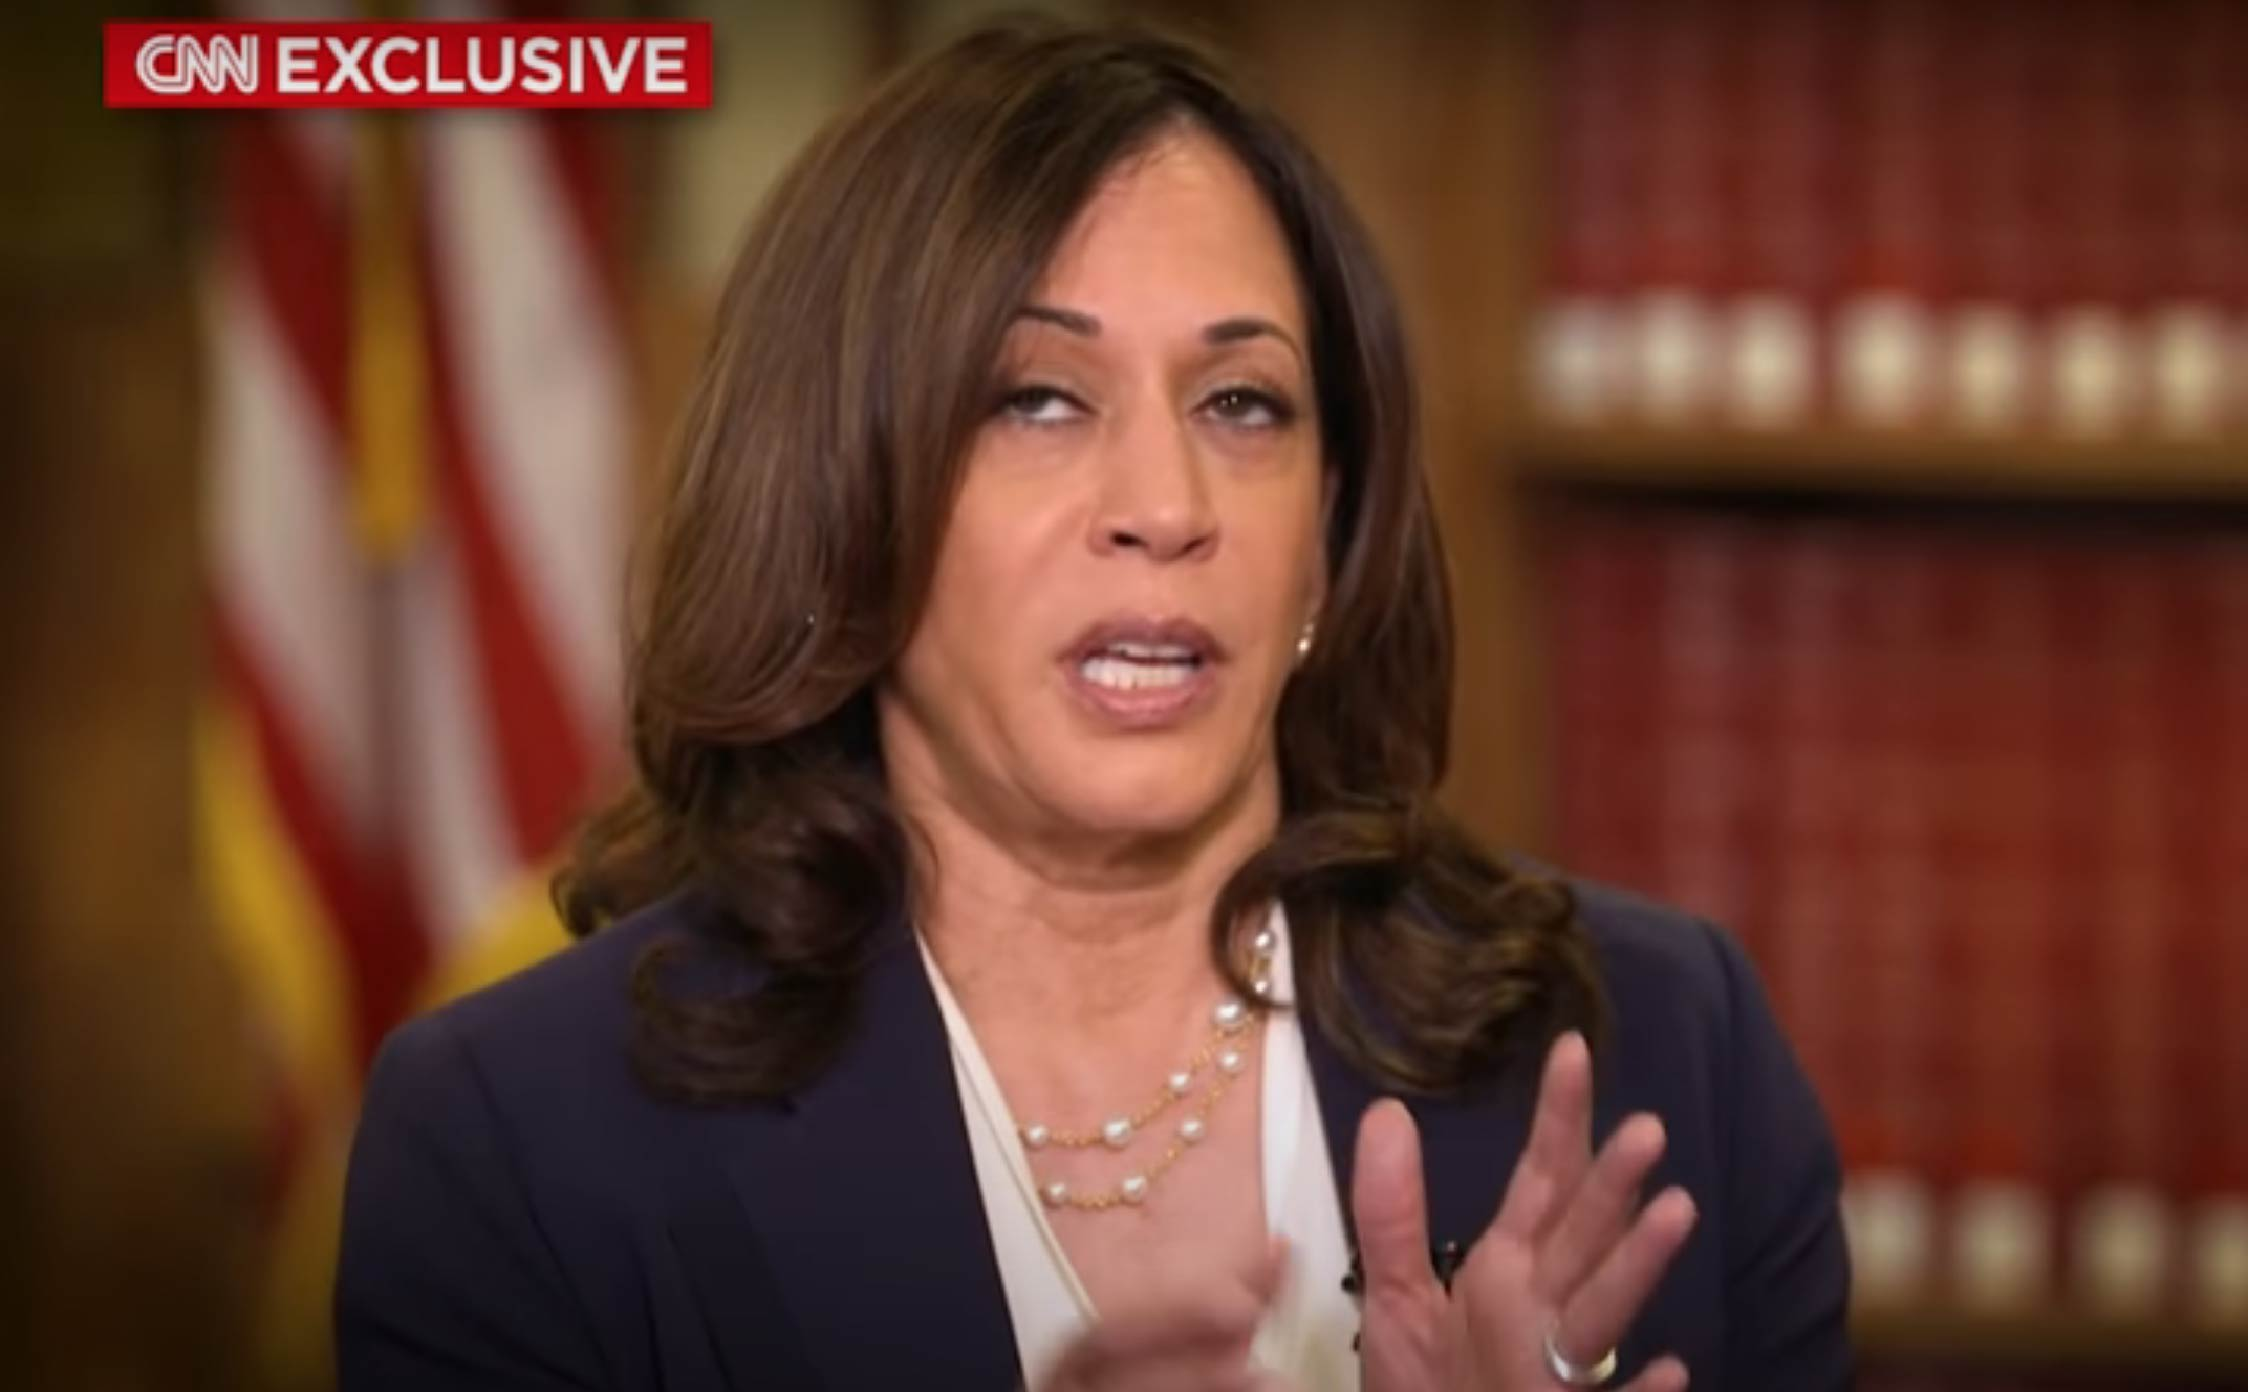 [VIDEO] Kamala Harris Already Admitting Defeat? Claims Russian Interference Could Cost Her and Biden the Election